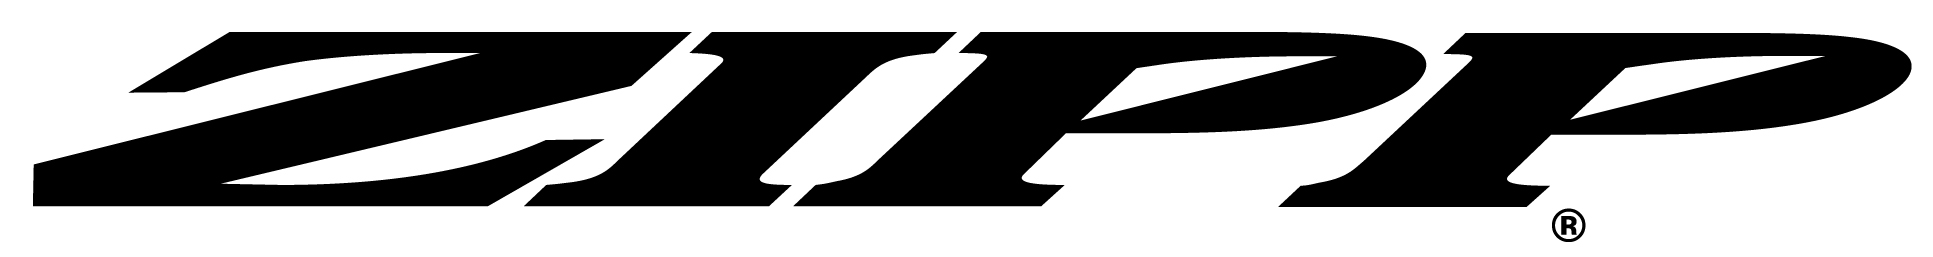 ZIPP-LOGO-from-ftp.jpg